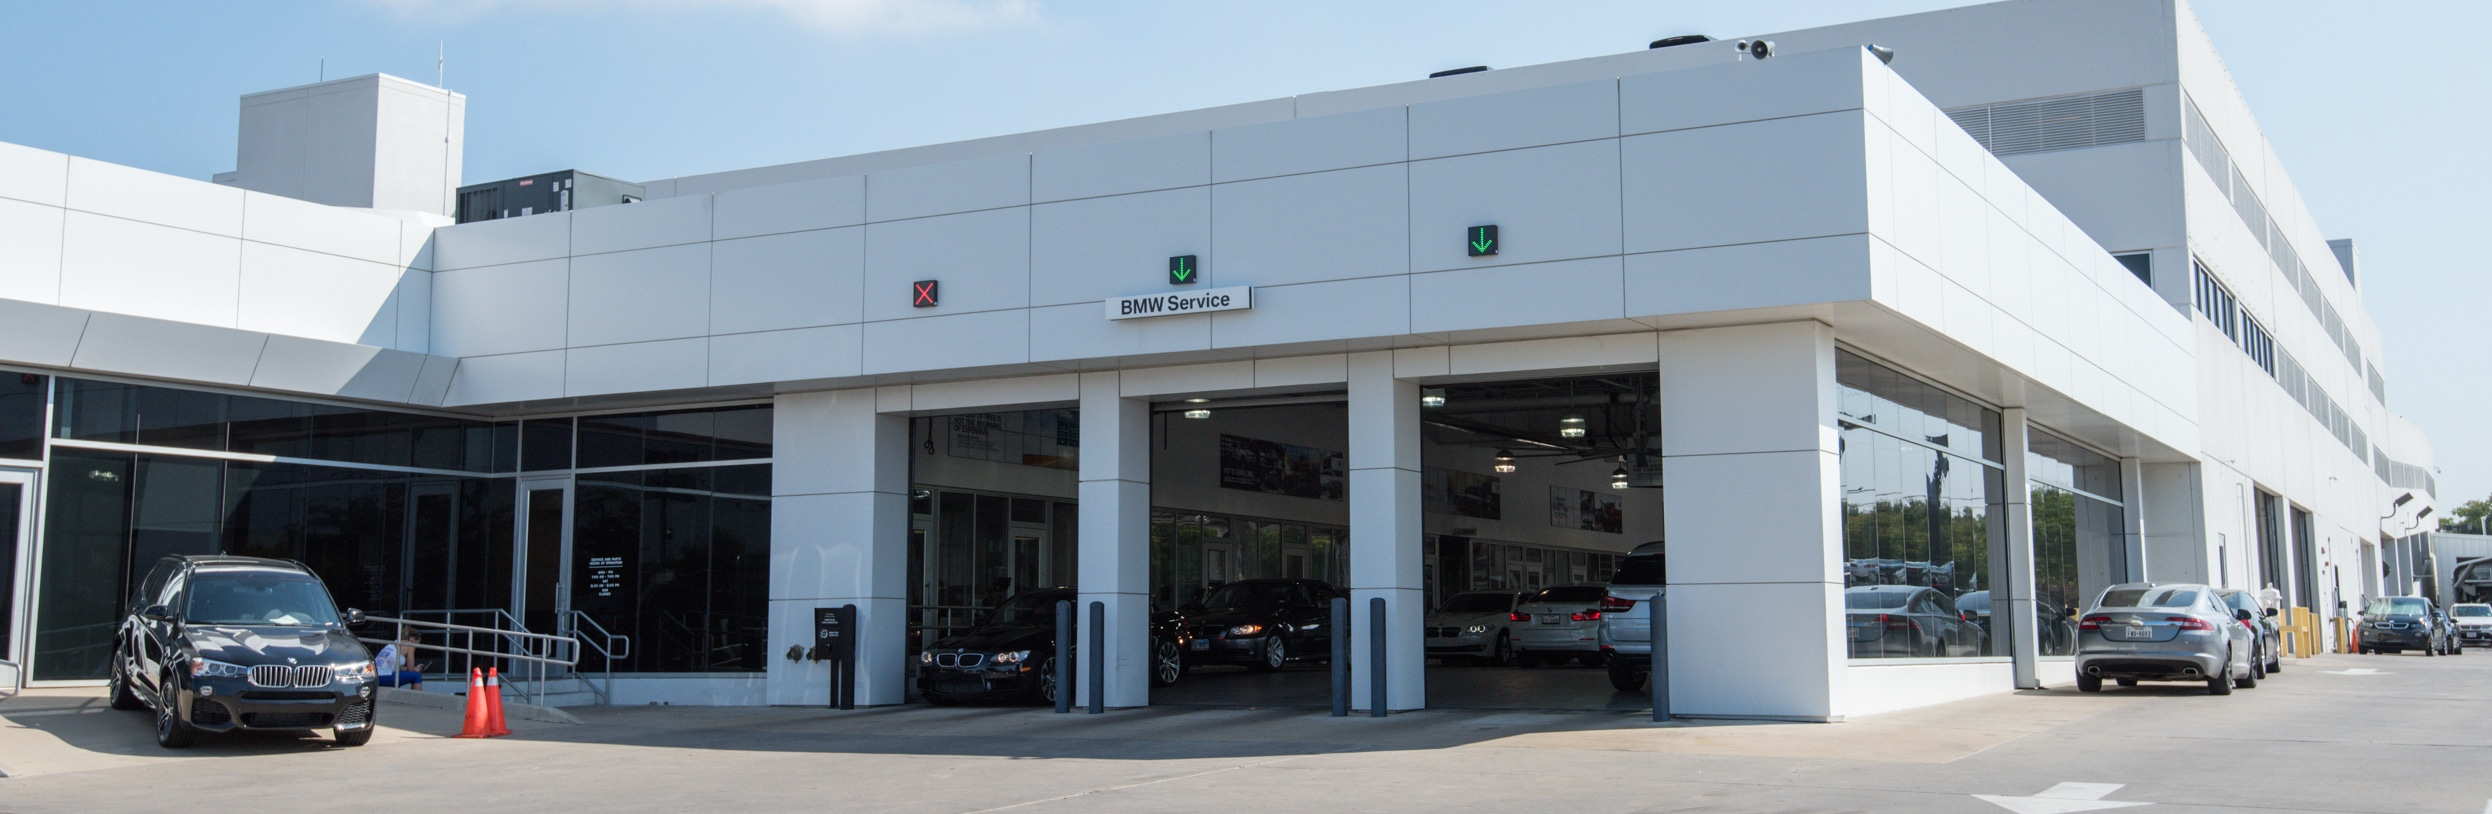 BMW Authorized Service Center Near Me Dallas TX